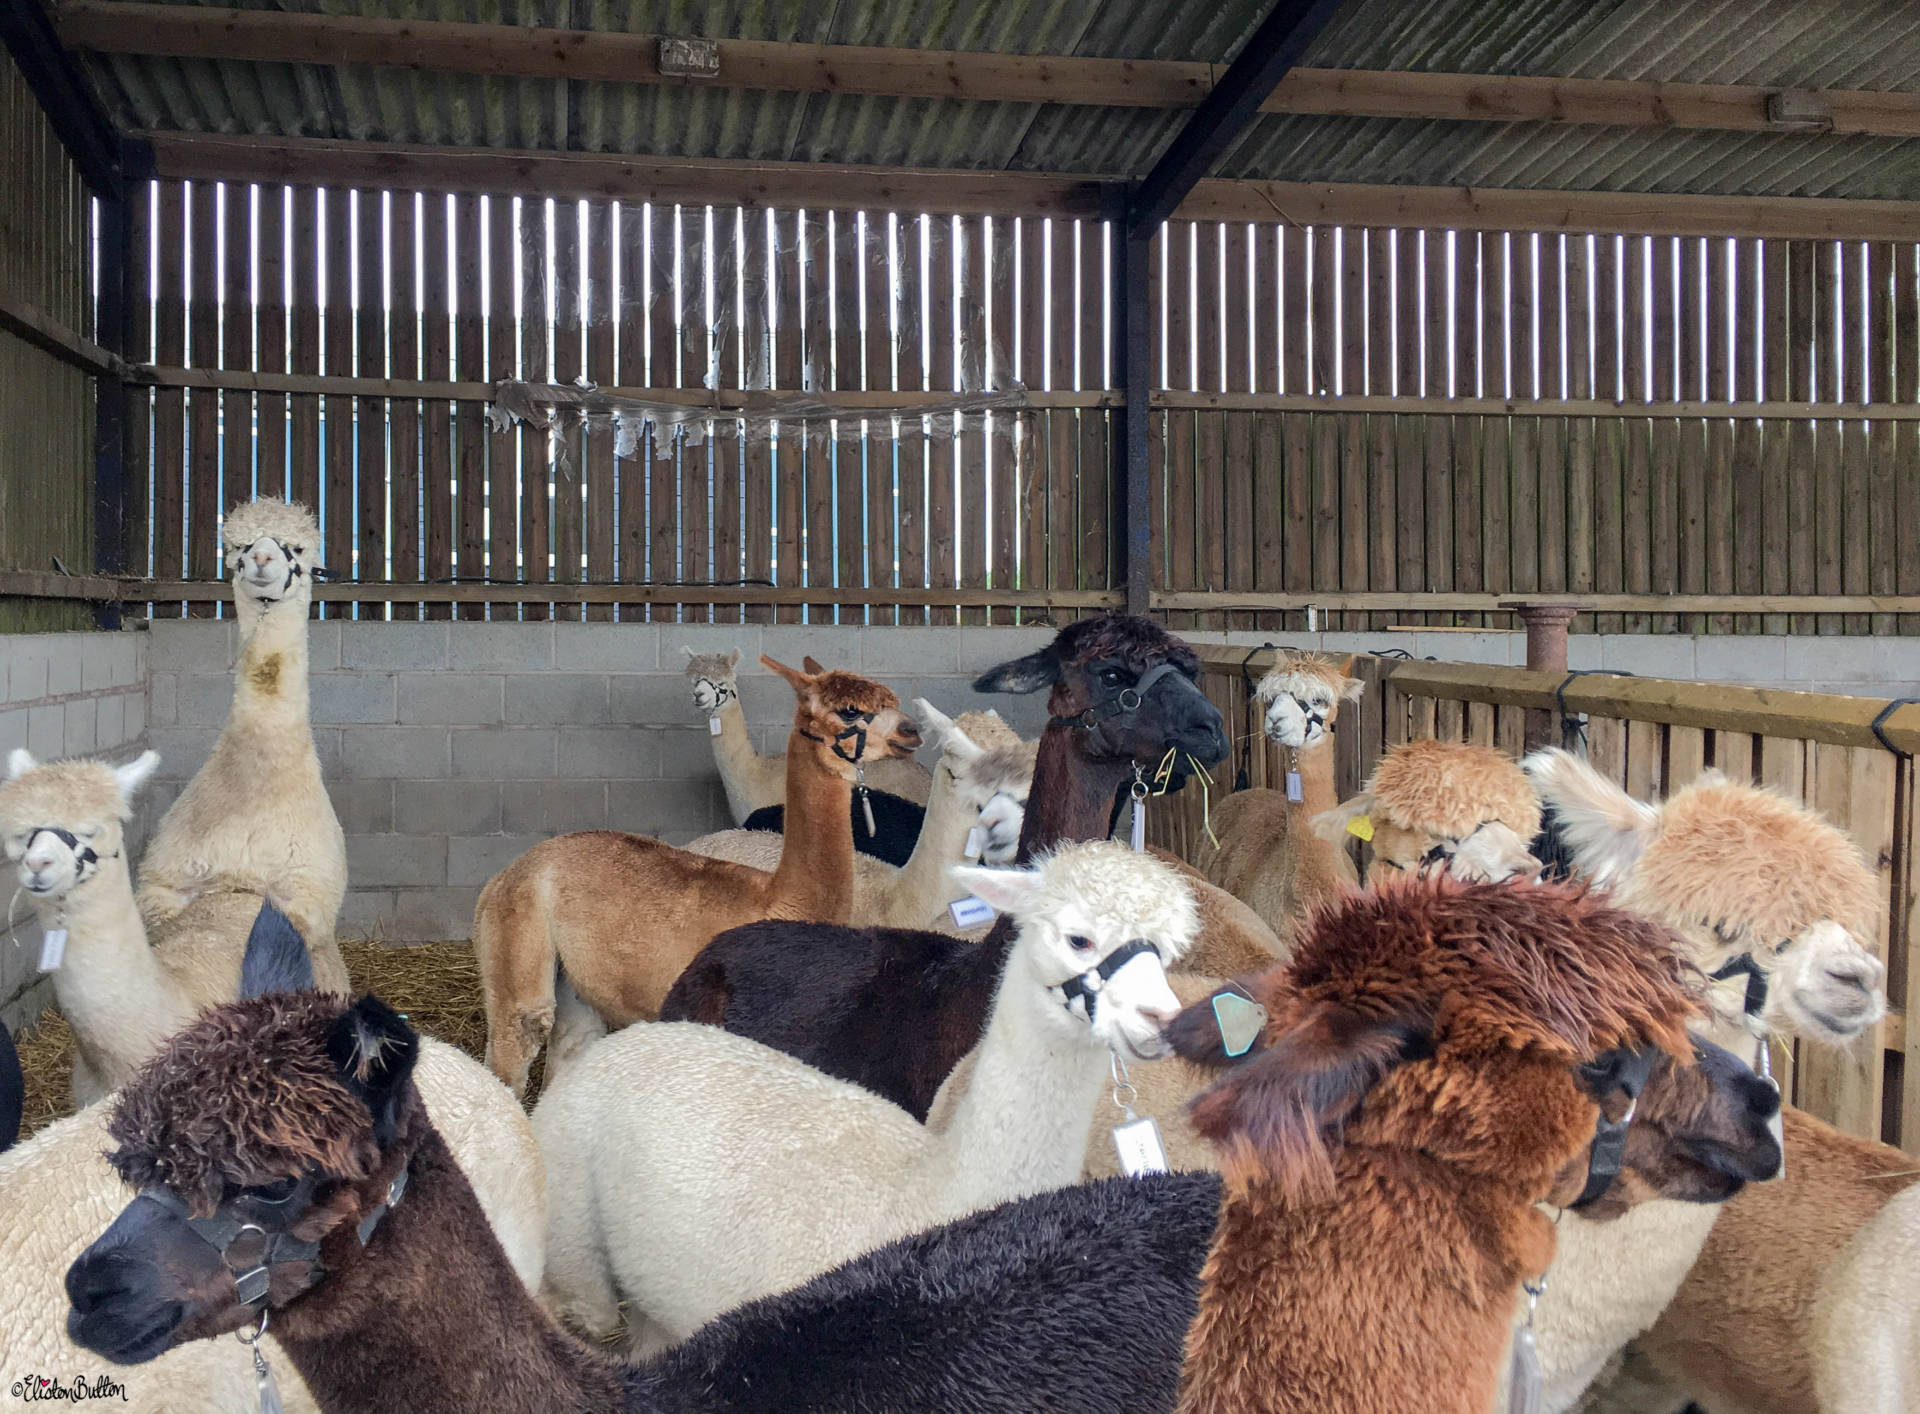 Alpaca Party at Charnwood Forest Alpaca Farm, Leicestershire - An Alpaca Adventure! at www.elistonbutton.com - Eliston Button - That Crafty Kid – Art, Design, Craft & Adventure.